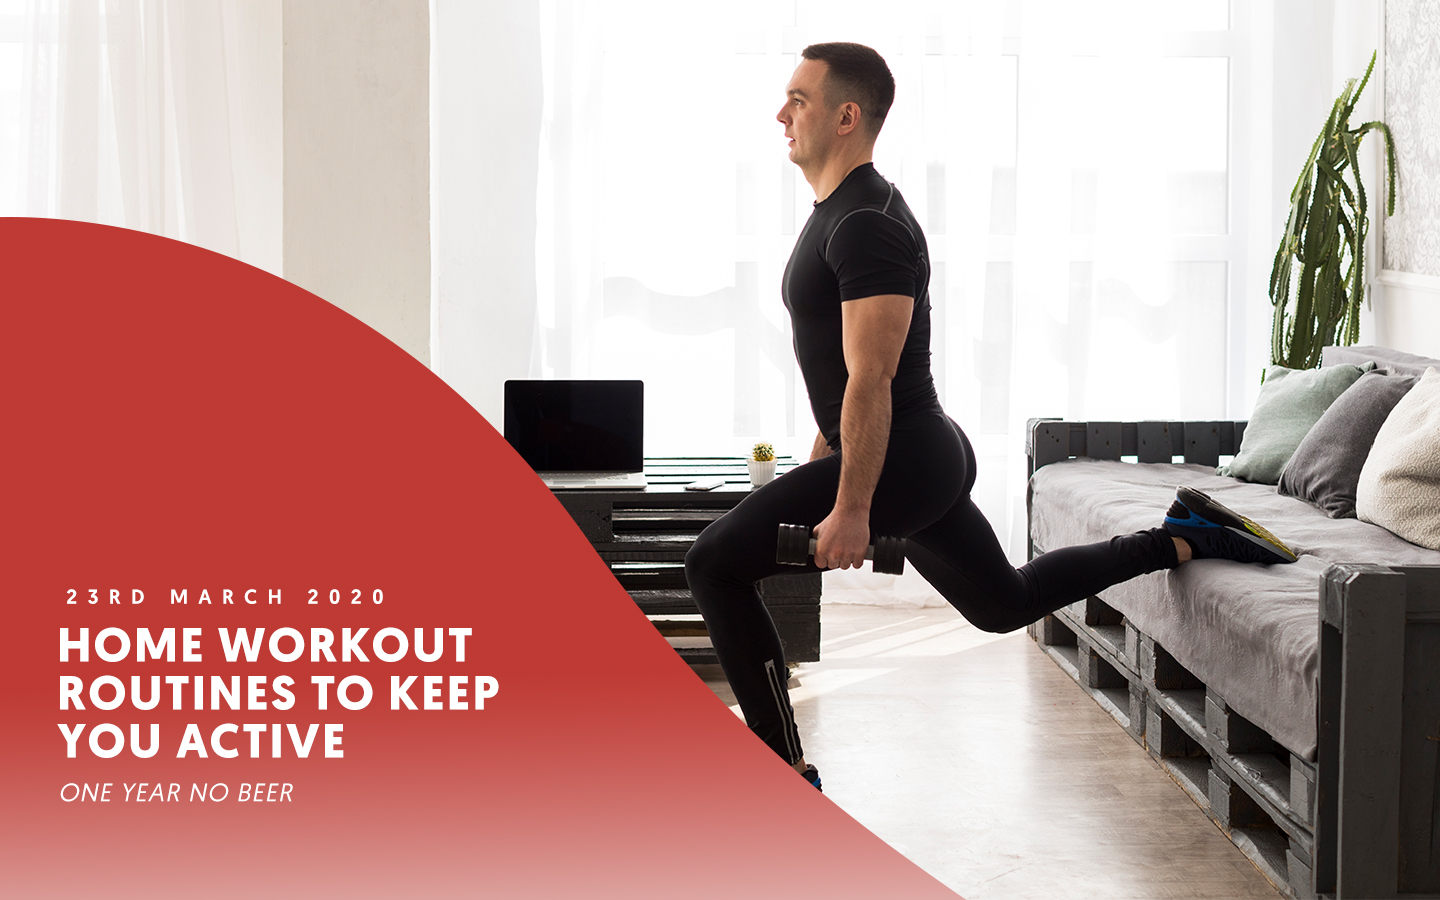 Home workout routines to keep you active